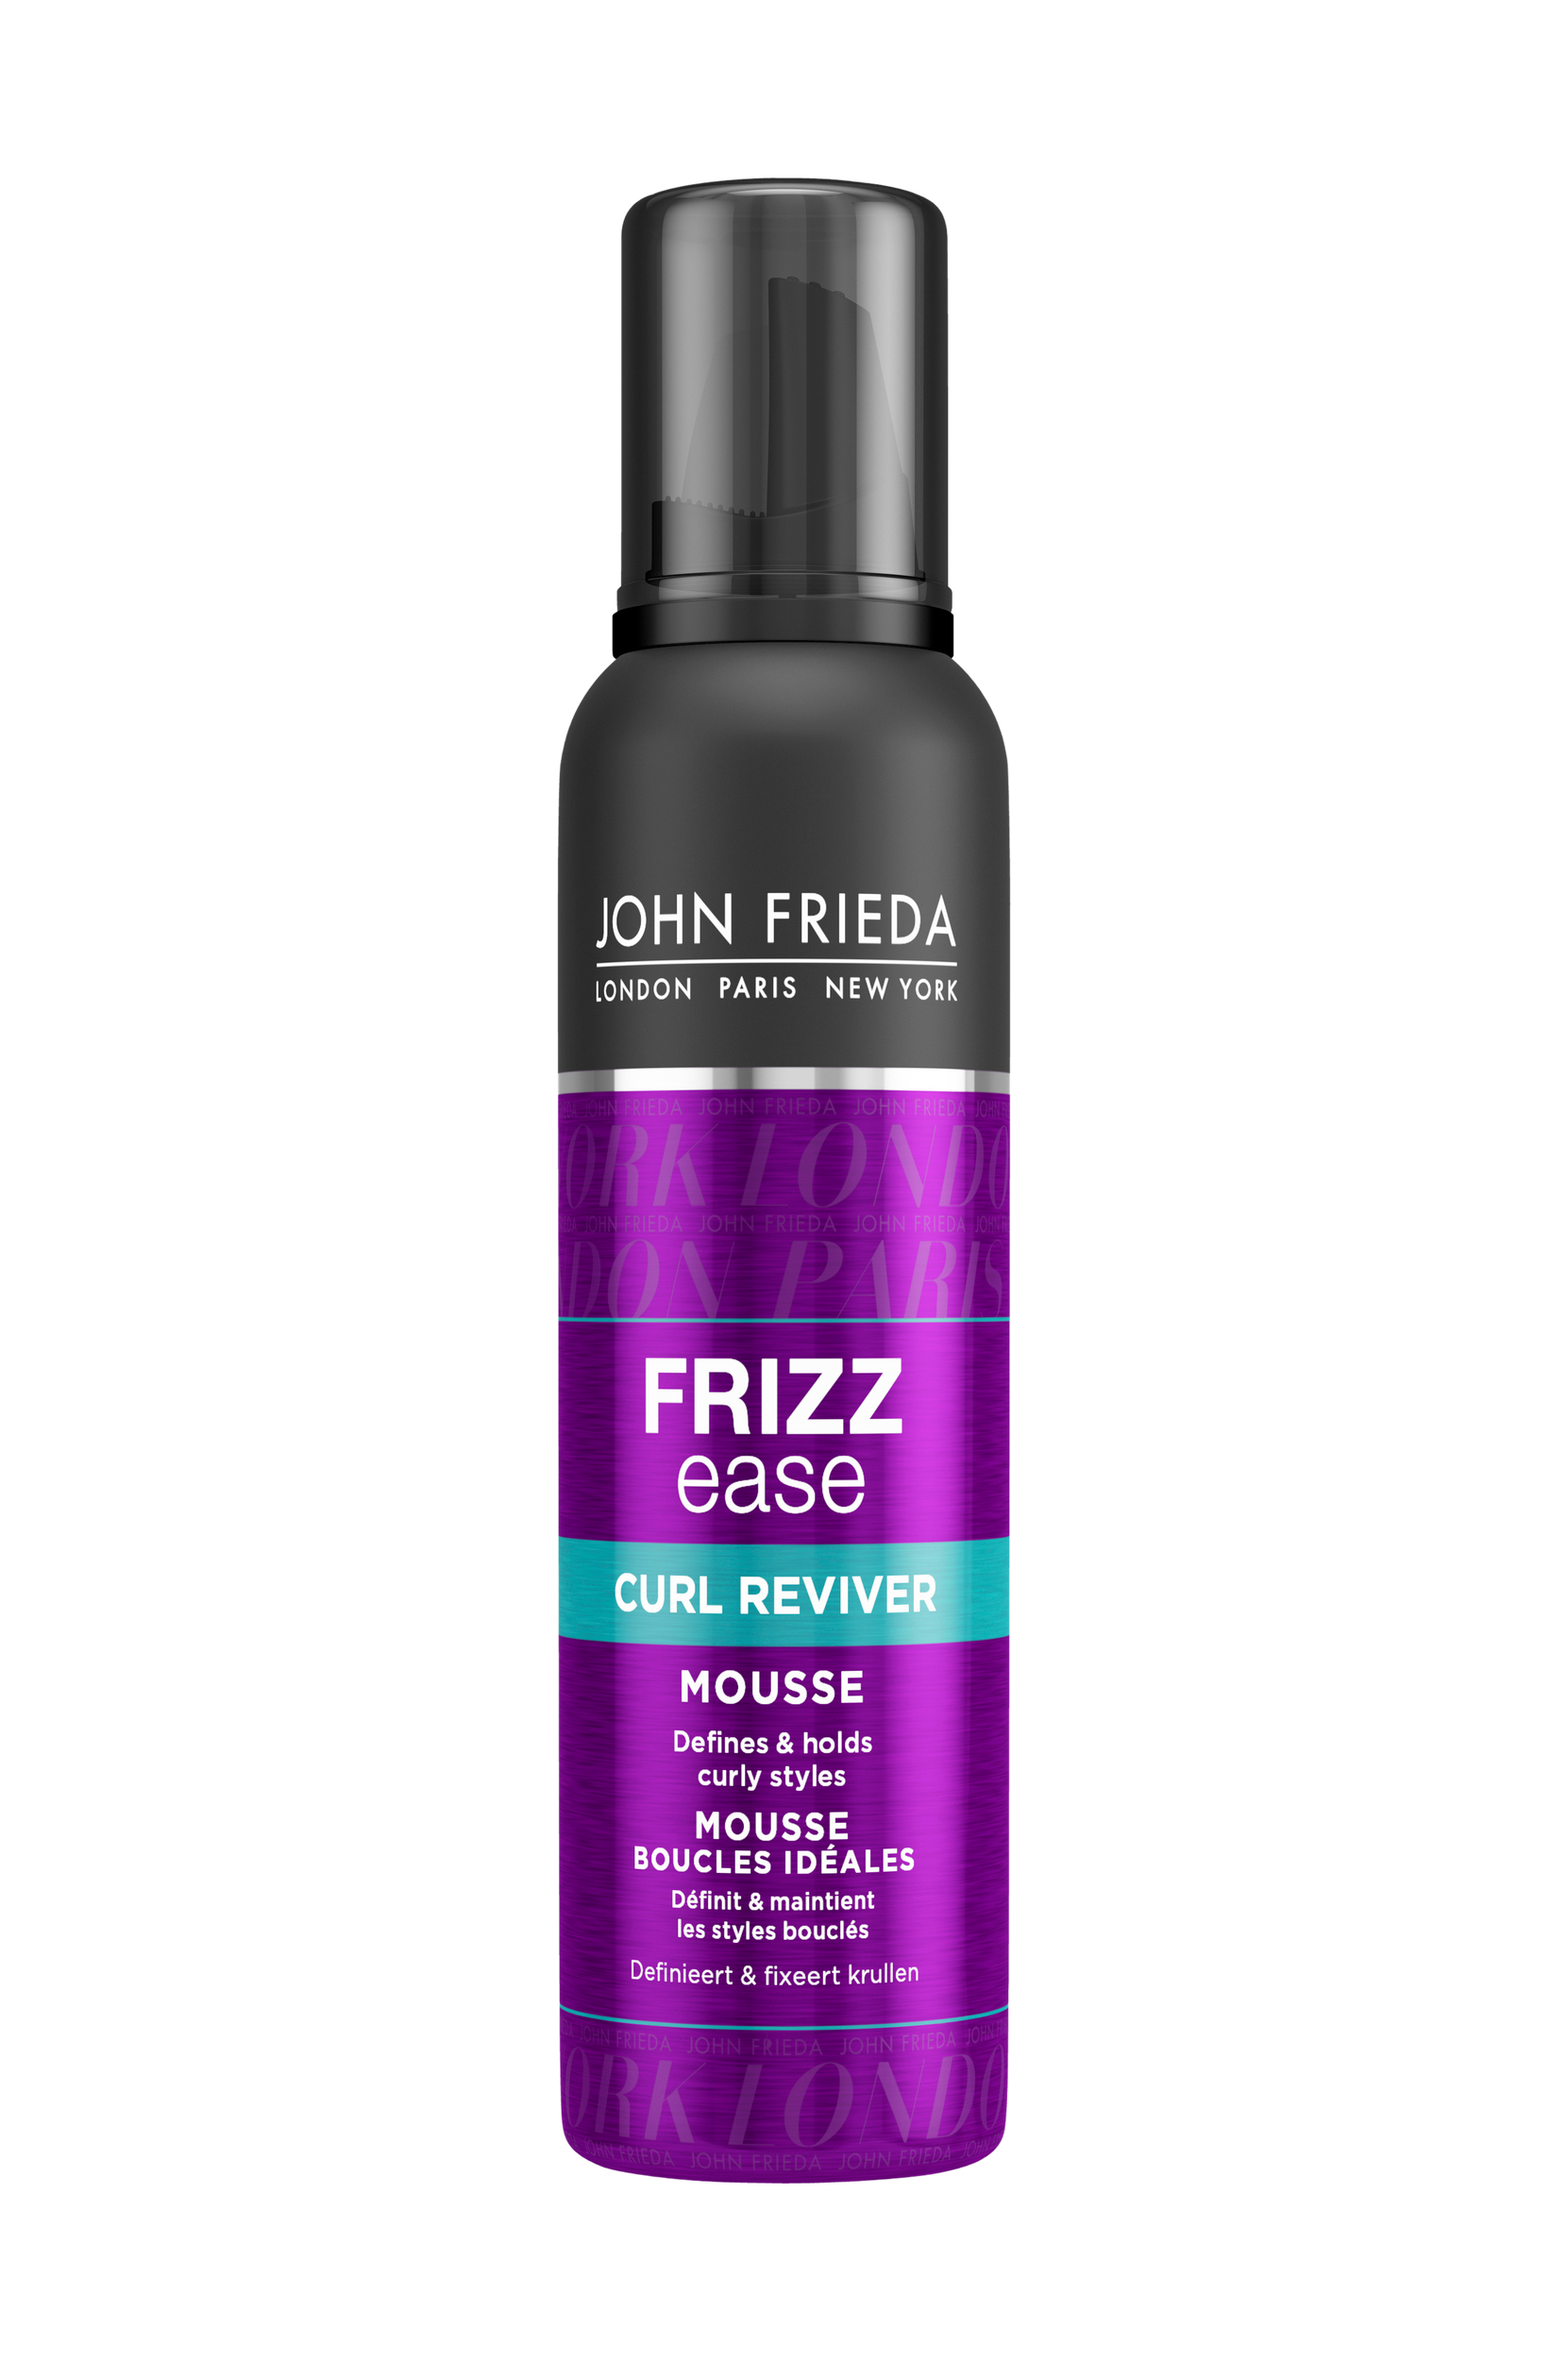 FRIZZ EASE CURL REVIVER STYLING MOUSSE